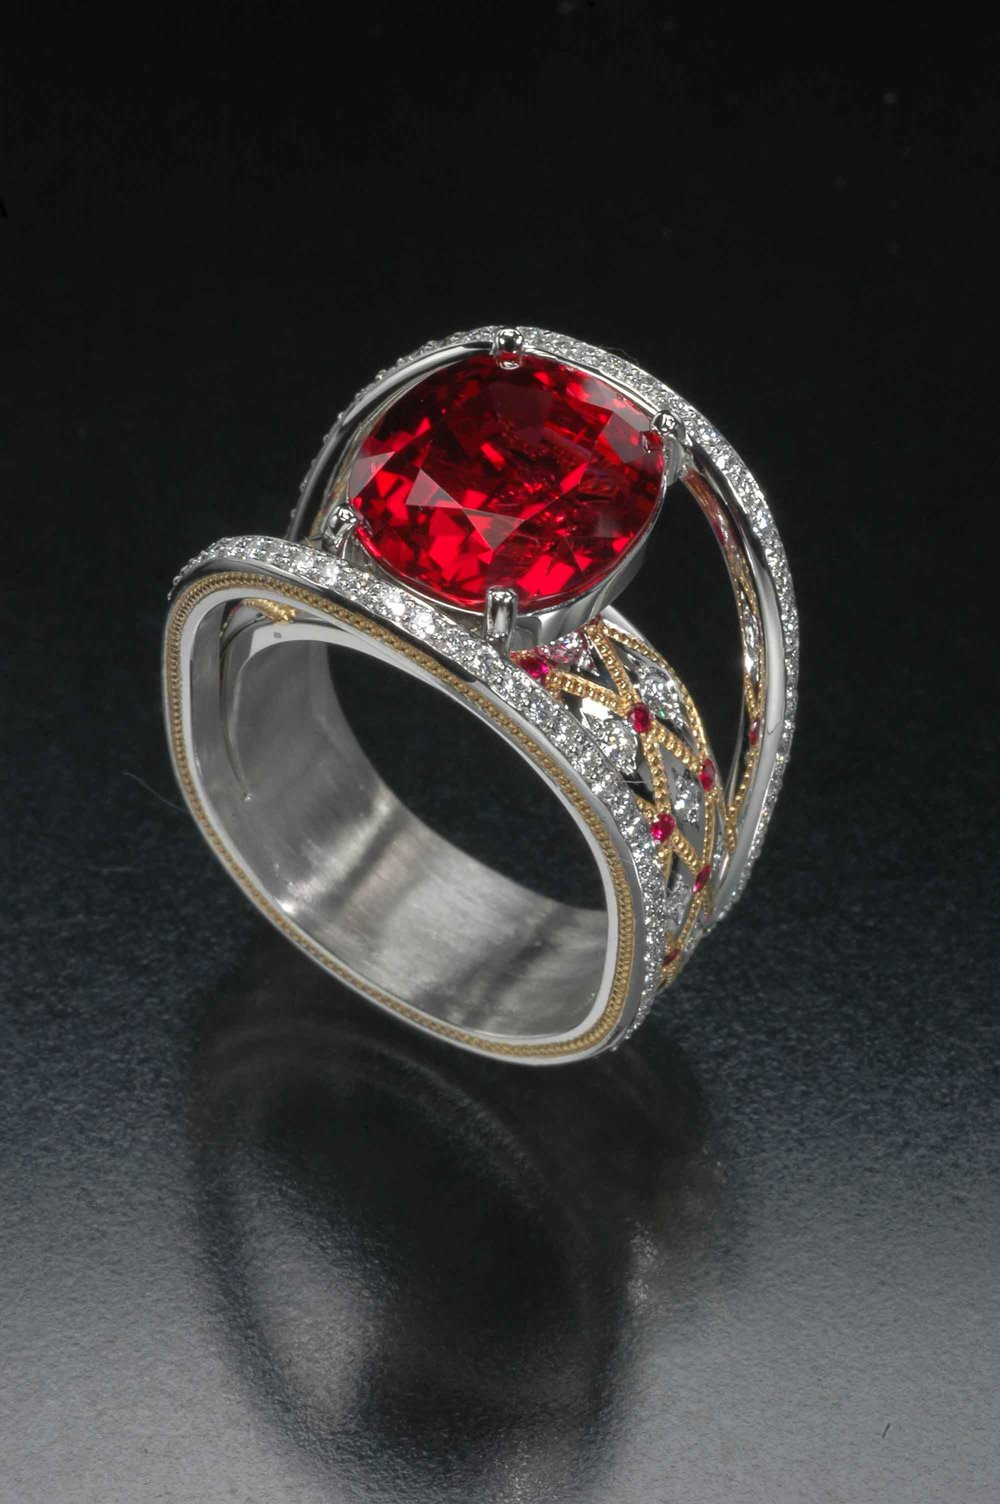 An exceptional 7.23-carat Thai-type ruby from Cambodia in a ring designed by Zoltan David. Wise discusses the color attributes of this material in Chapter 22, Ruby. (Photo: Jeff Scovil, courtesy R. W. Wise, Goldsmiths)